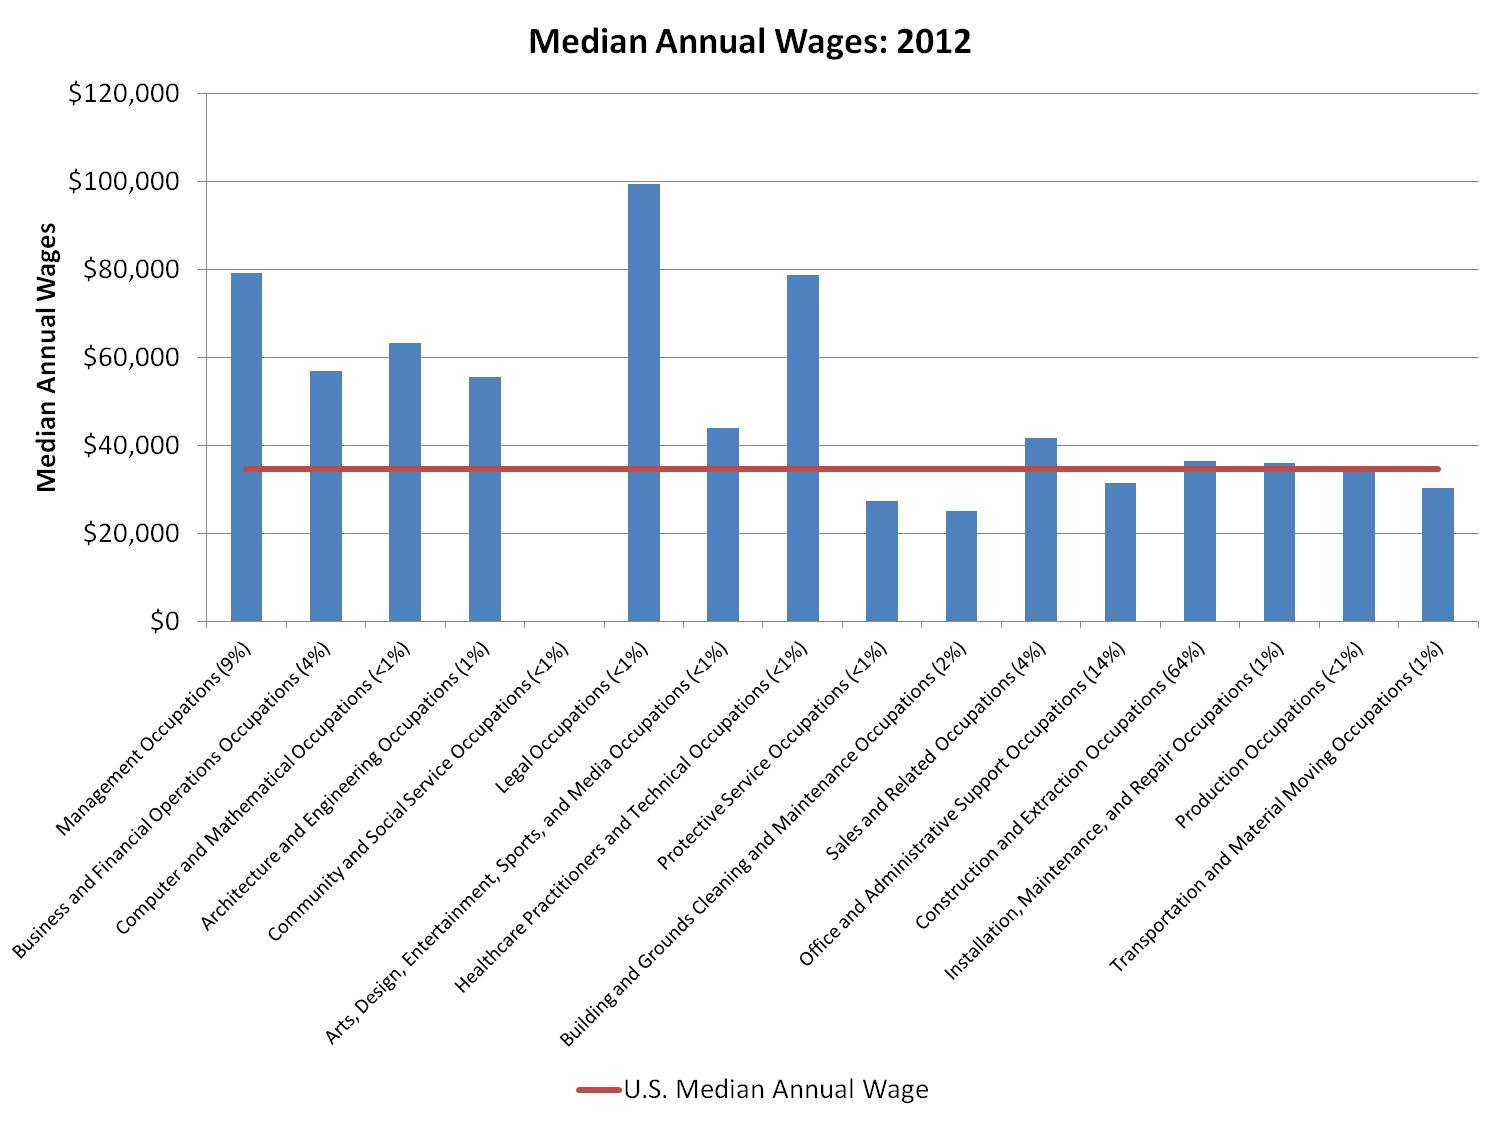 median-wages_res-construction_2012.jpg